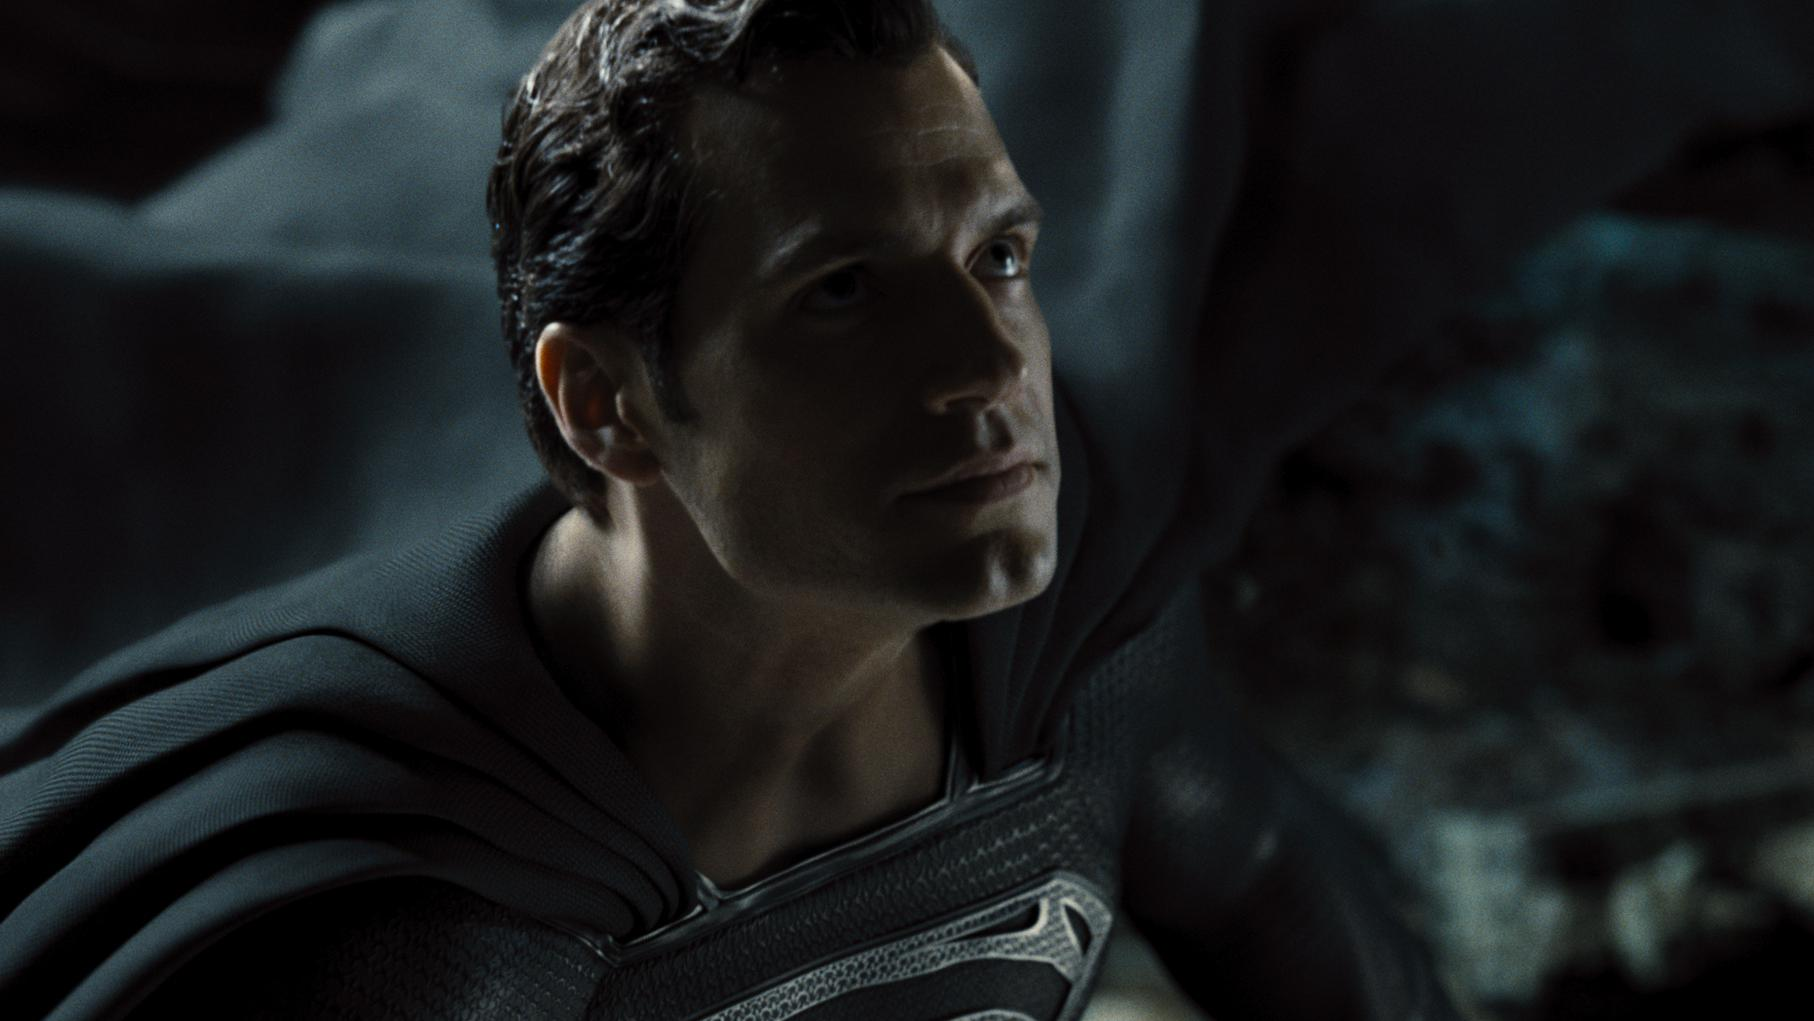 Superman takes flight in Zack Snyder's 'Justice League'